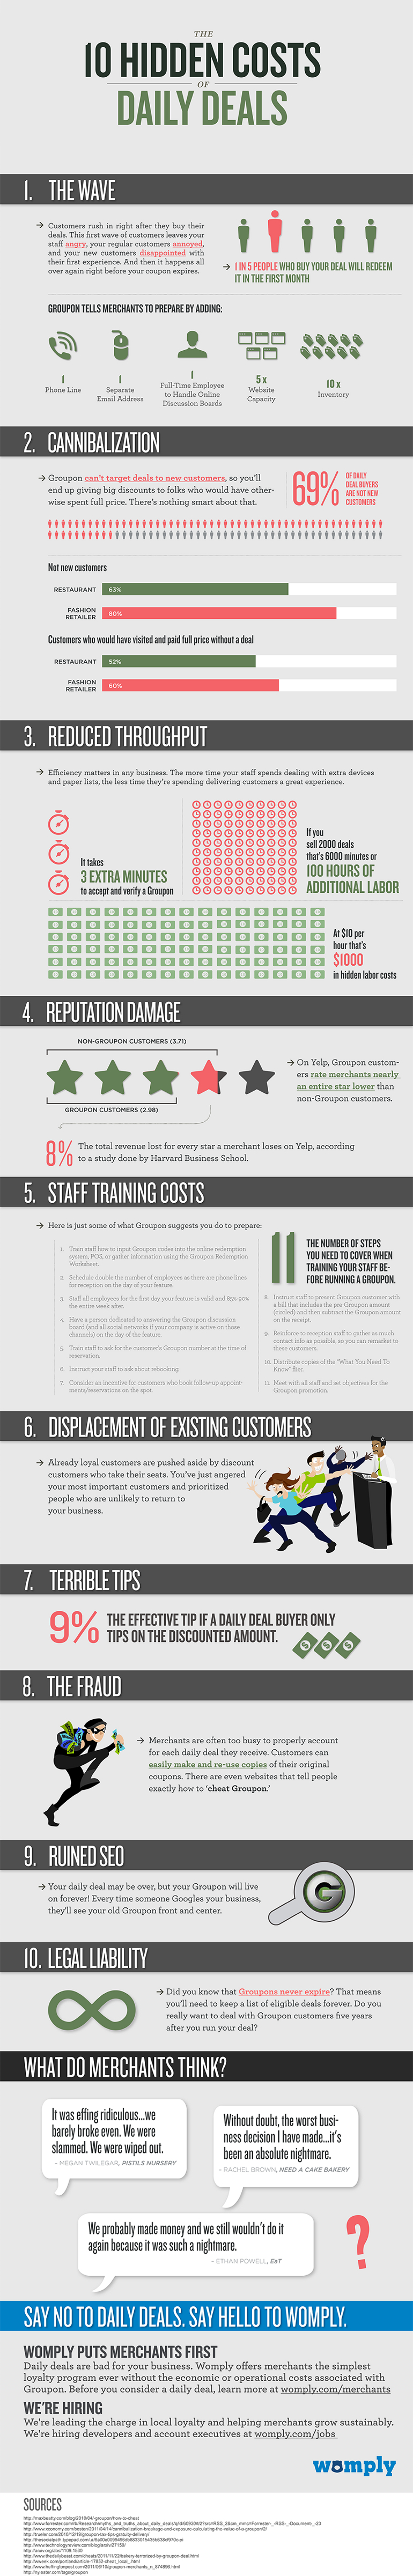 10 Daily Mistakes and Costs for Businesses to Avoid